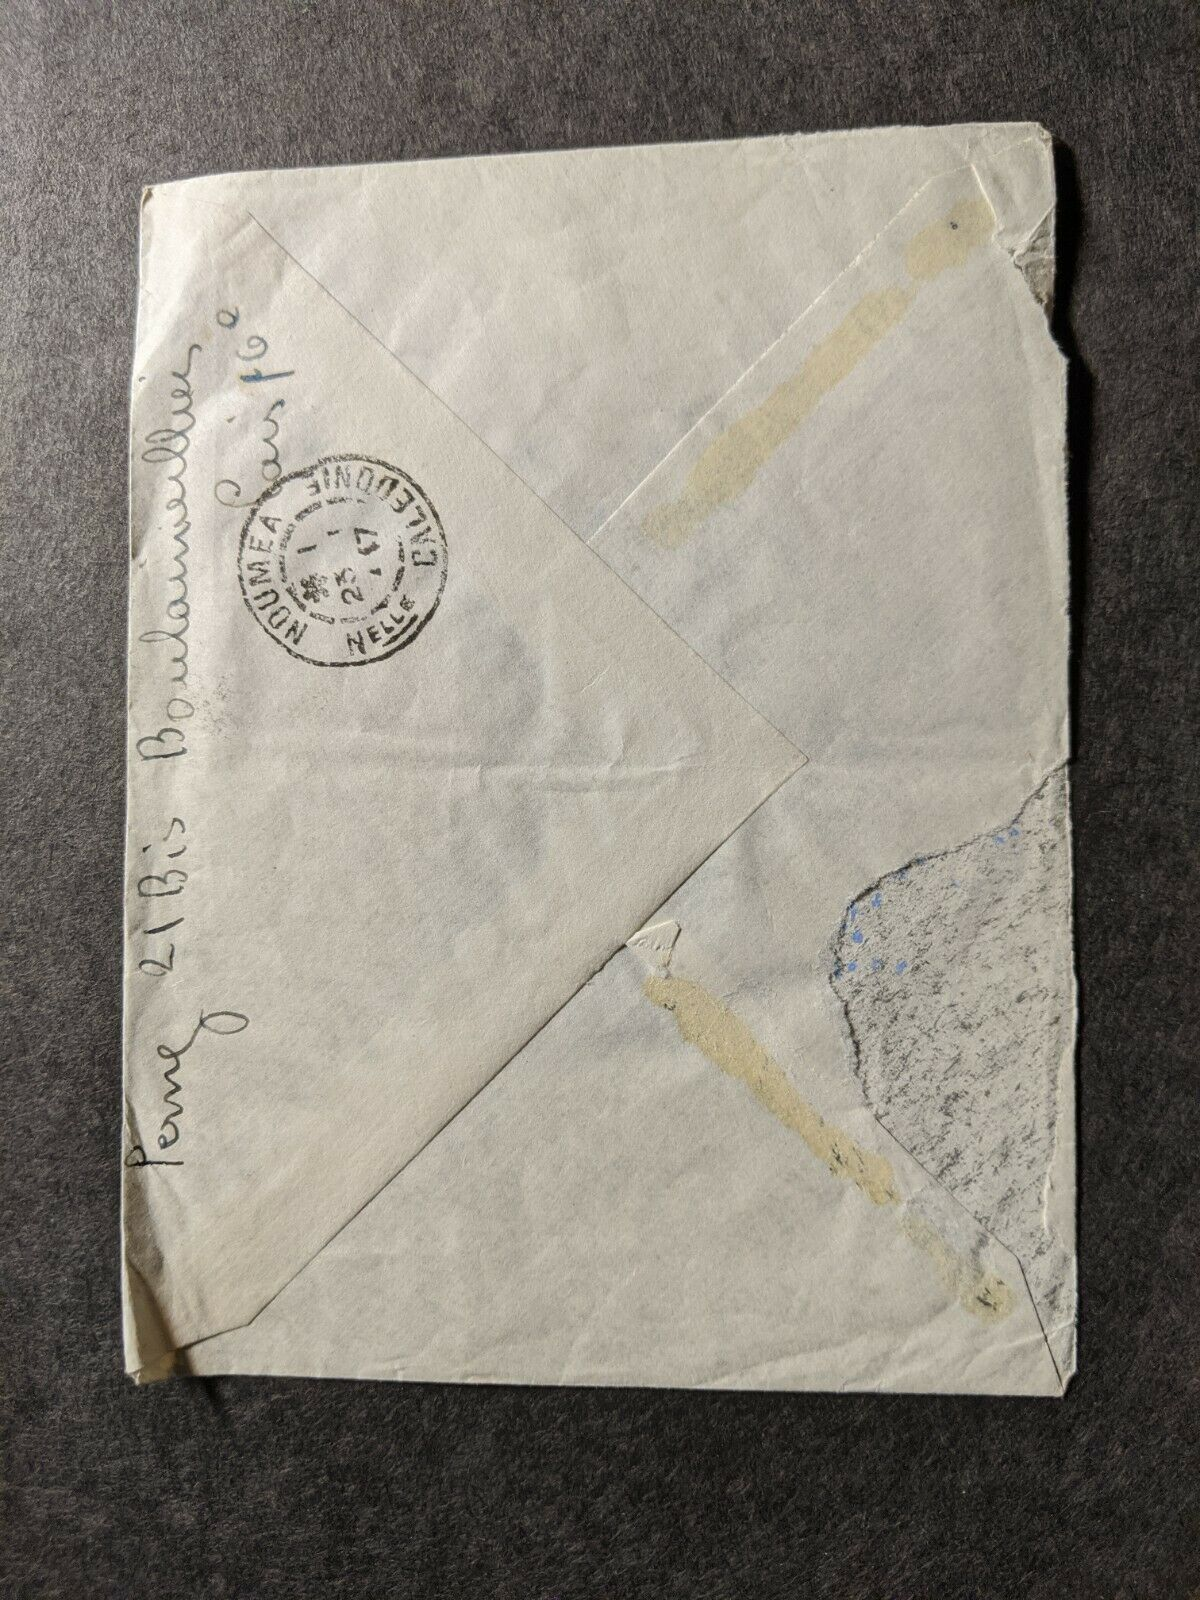 French Ship SS La GILTAIRE Naval Cover 1947 Paris France To Noumea New Caledonia - $9.99